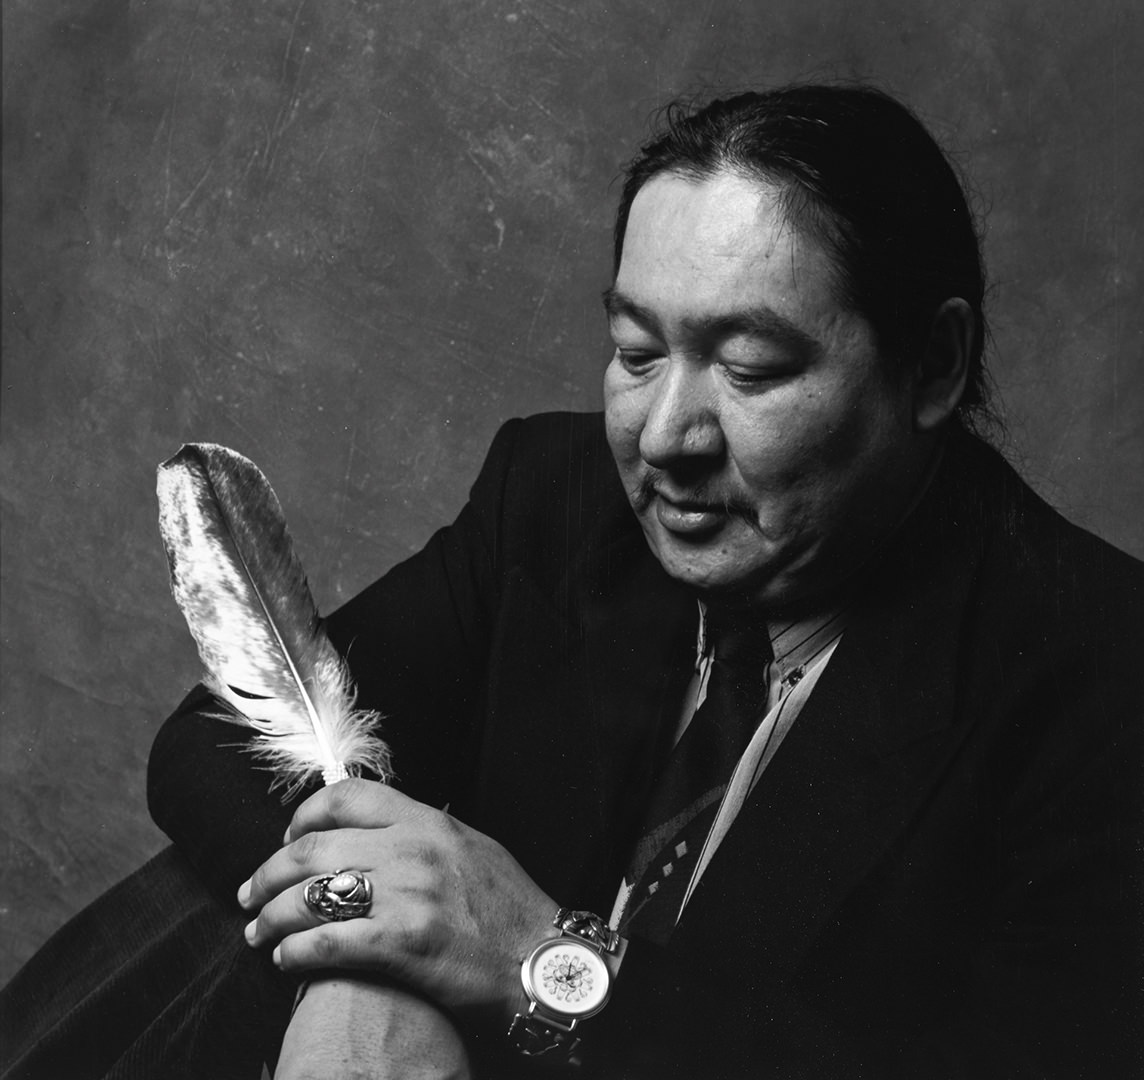 Chief Elijah Harper (1990) David Neel (1960 - ) Bxw photograph Collection: Canada Council Art Bank